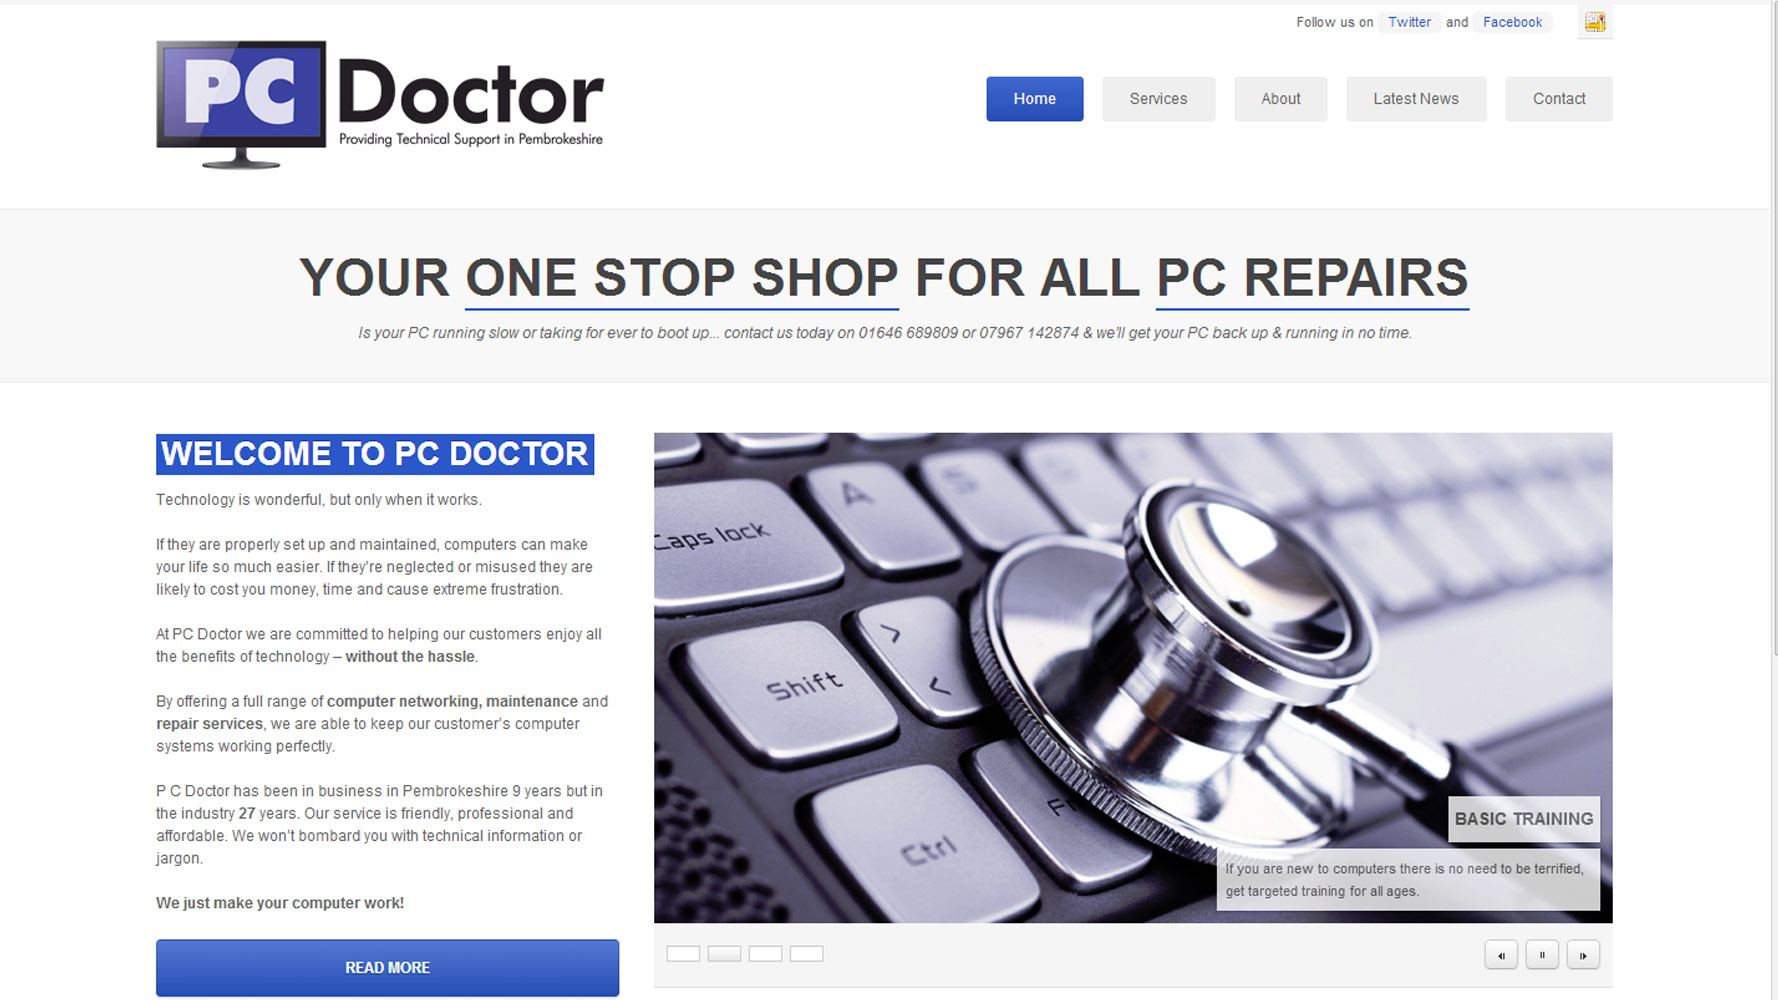 pembs pc doctor homepage designed by Web Adept